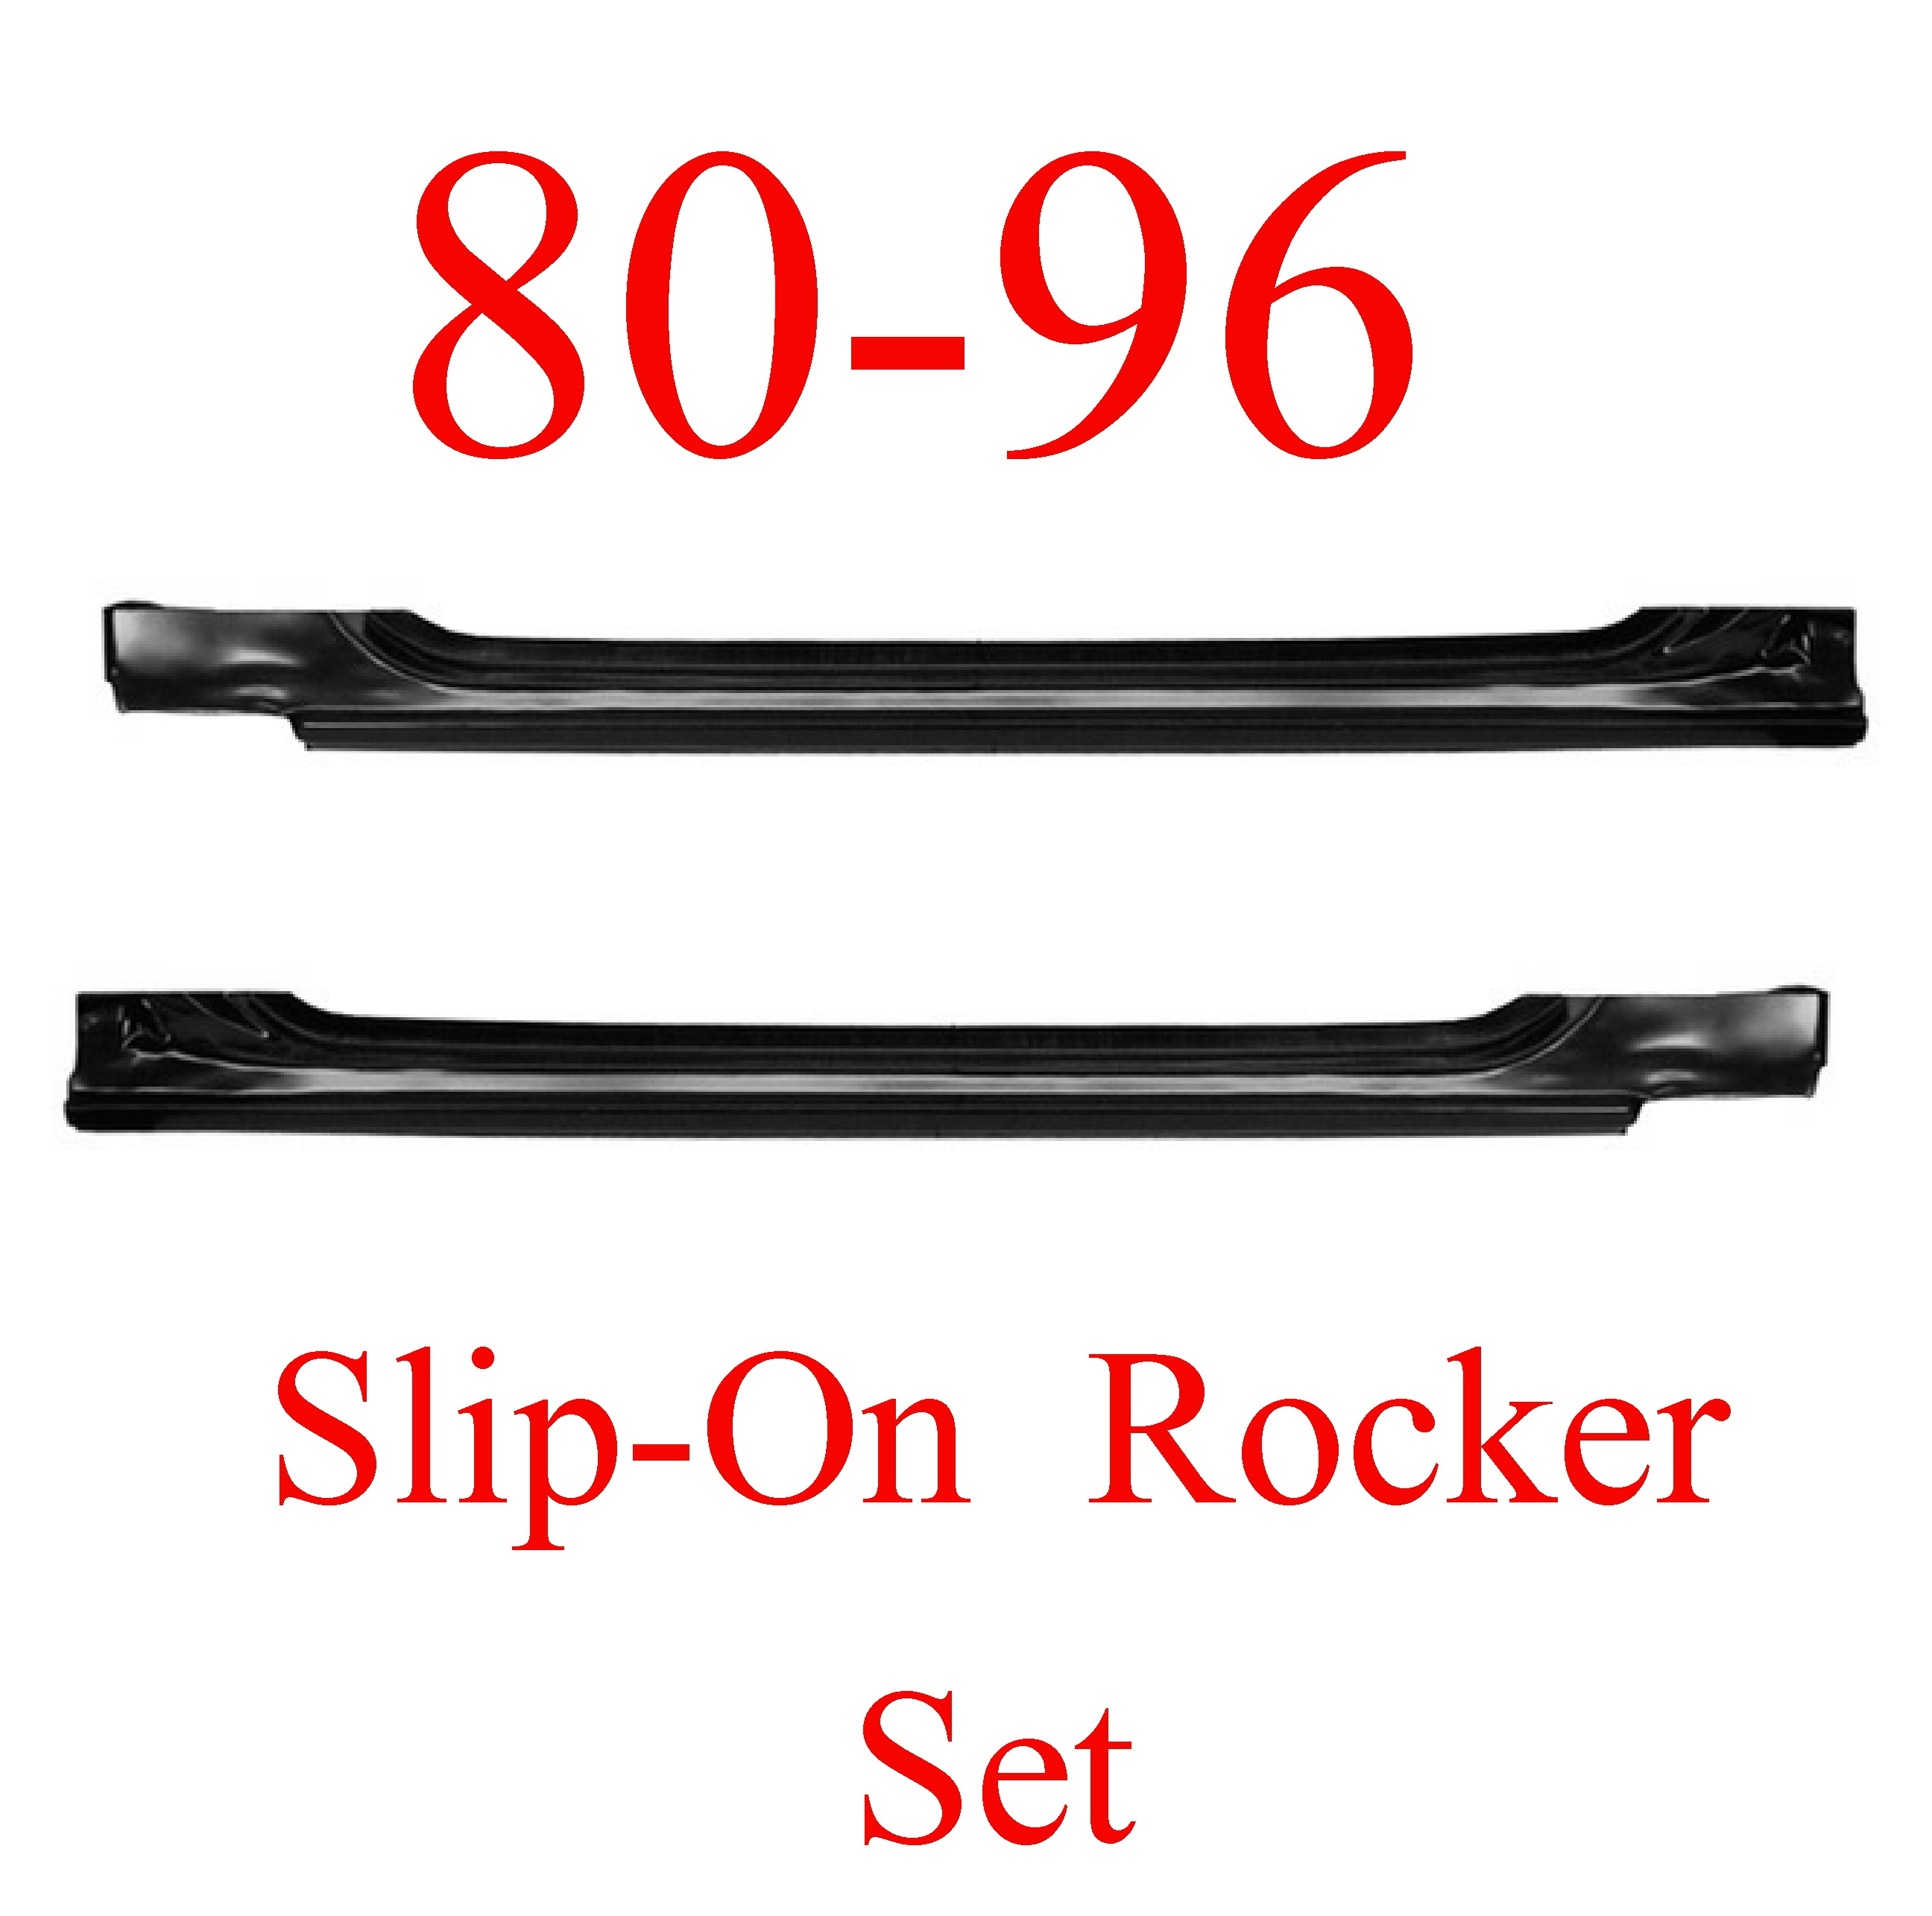 80-96 Ford Slip-On Rocker Panel SET Ford Truck & Bronco